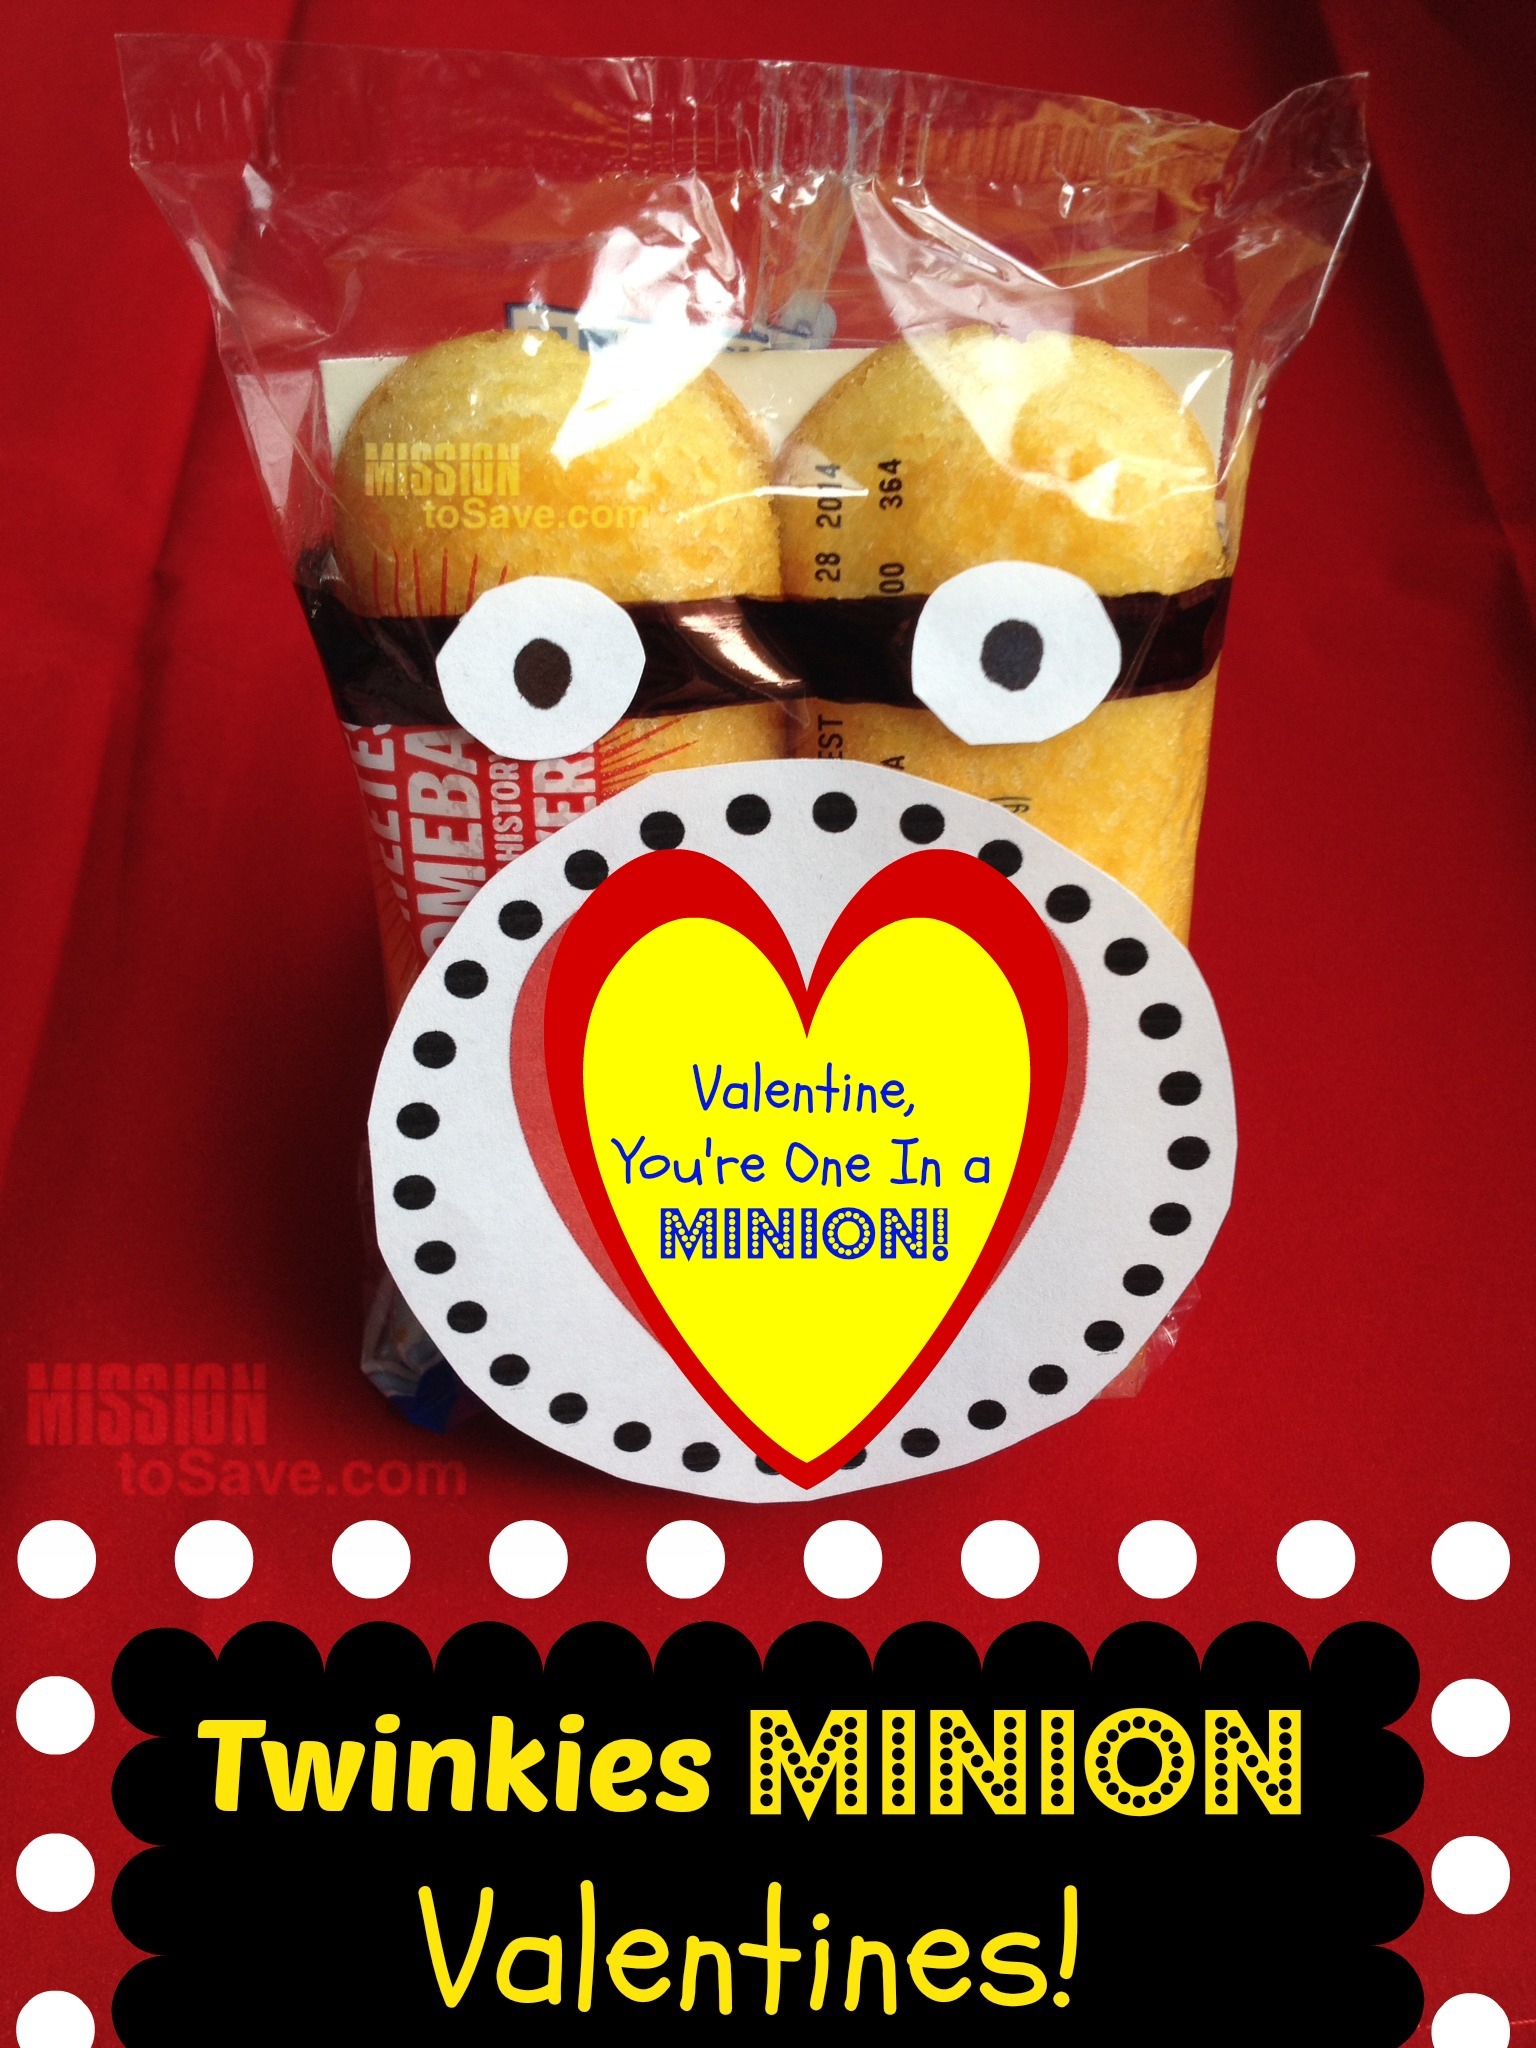 How To Decorate Minion Cookies for Valentine's Day! - YouTube